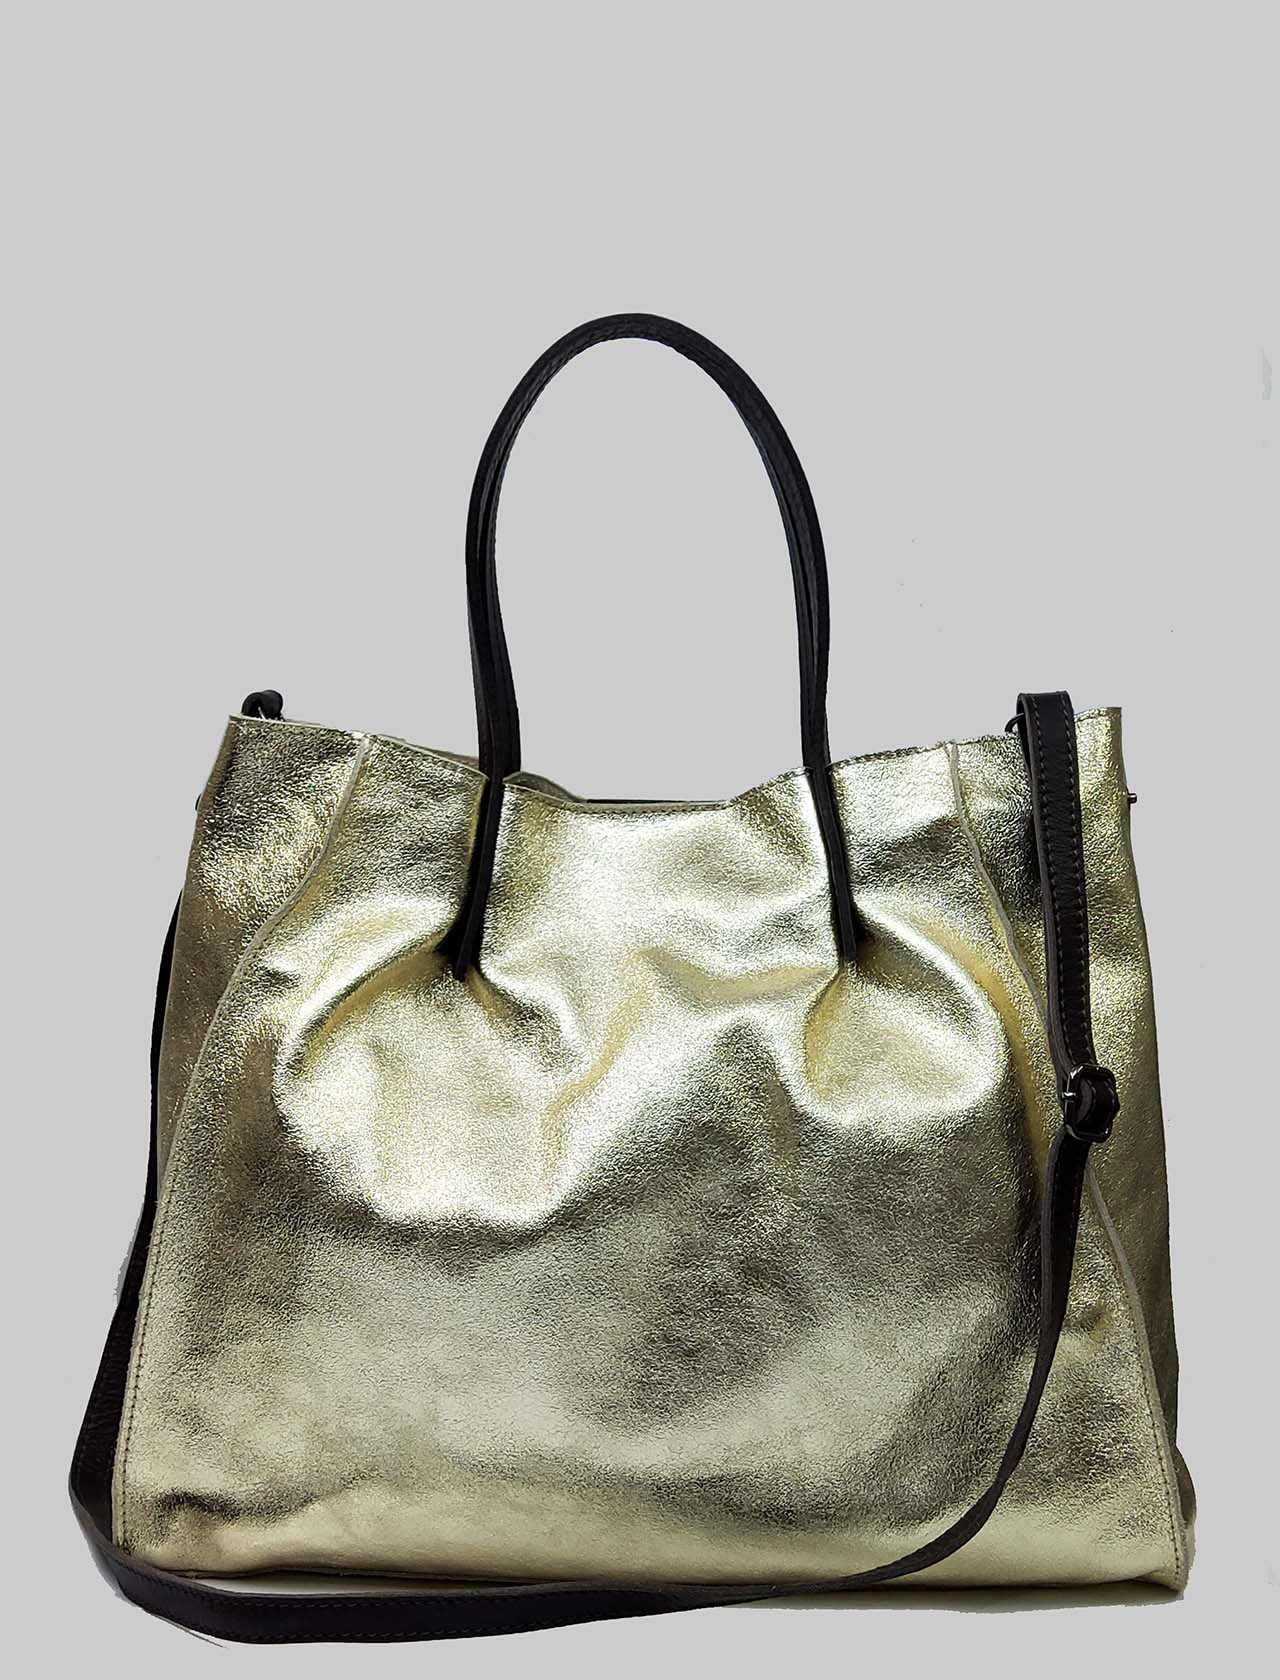 Woman Bags in Gold Laminated Leather with Double Handles and Removable Shoulder Strap Spatarella | Bags and backpacks | PE0212602